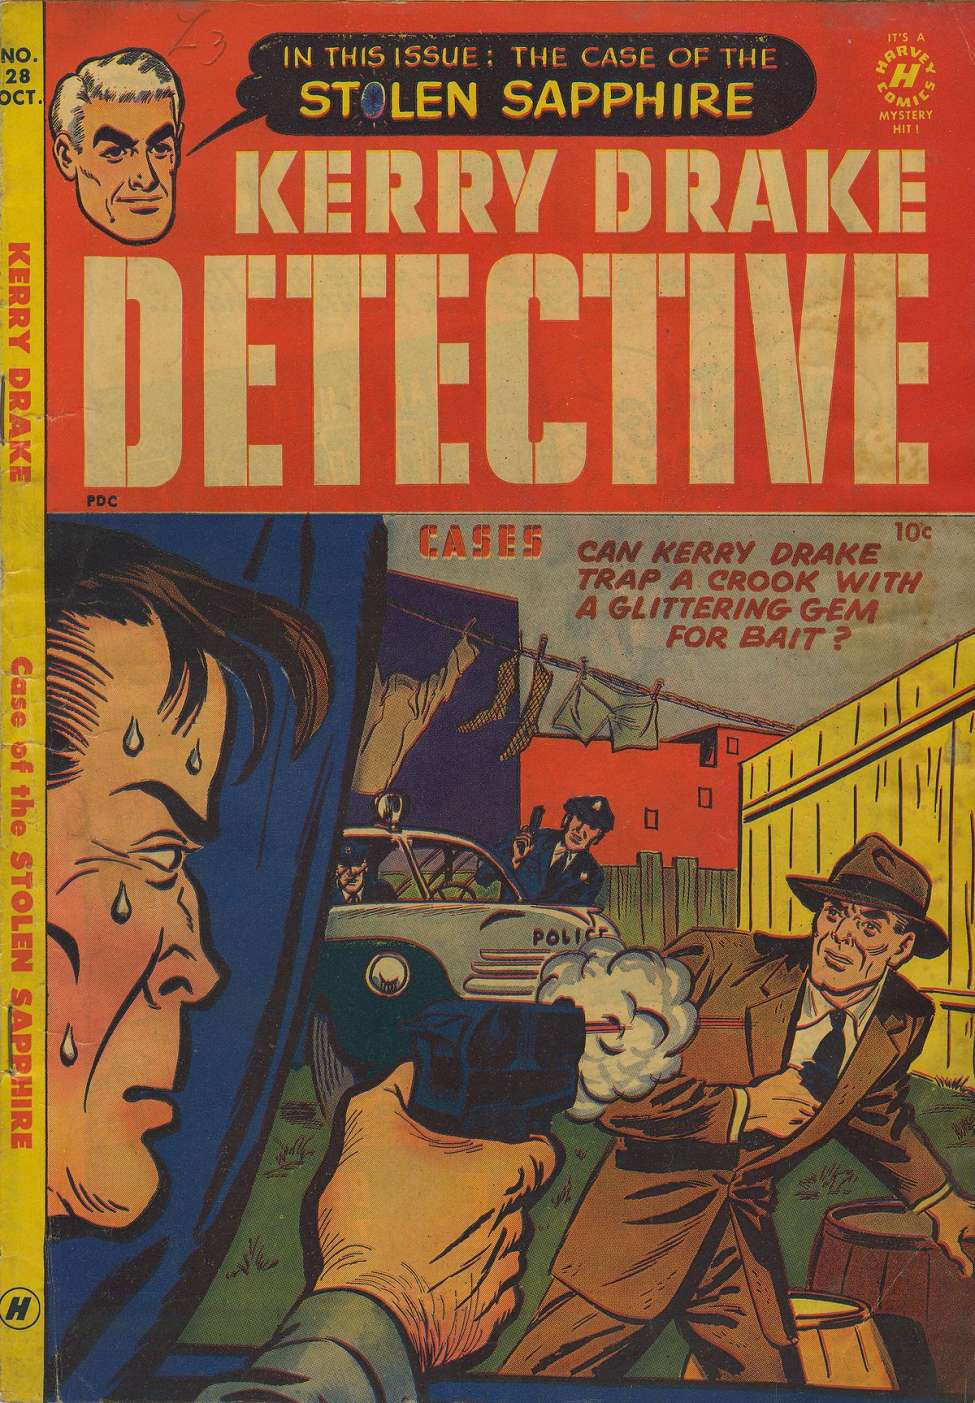 Comic Book Cover For Kerry Drake Detective Cases #28